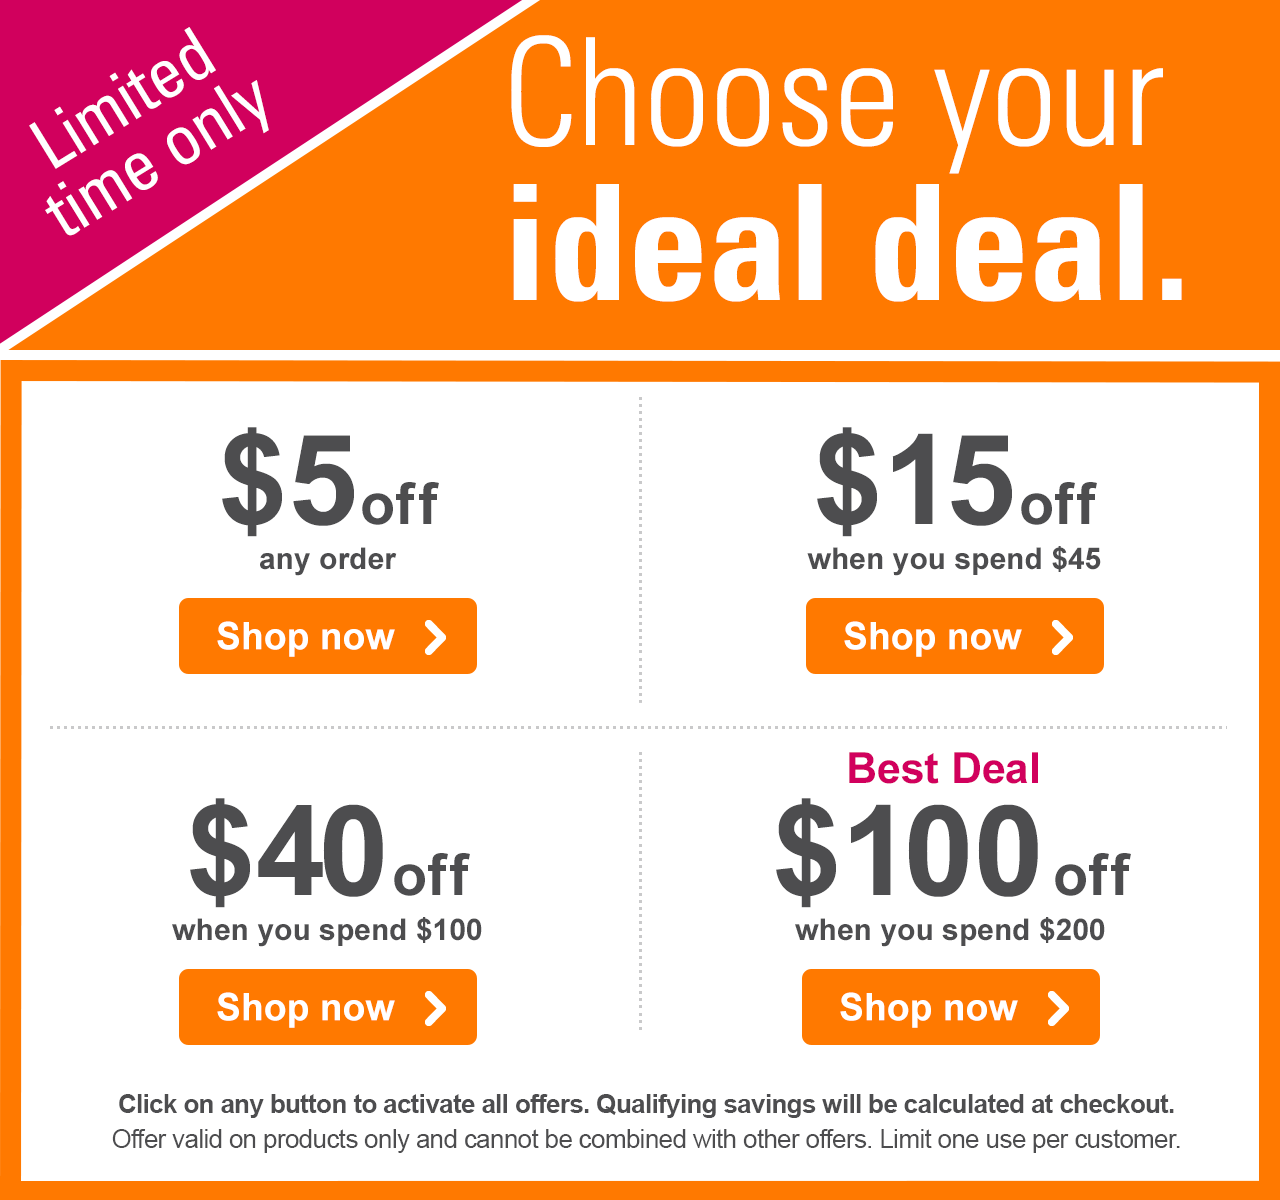 Choose your ideal deal. Limited time only  $5 off any order Shop now › - $15 off when you spend $45 Shop now › - $40 off when you spend $100 Shop now › - Best Deal - $100 off when you spend $200 Shop now › Click on any button to activate all offers. Qualifying savings will be calculated at checkout. Offer valid on products only and cannot be combined with other offers. Limit one use per customer.